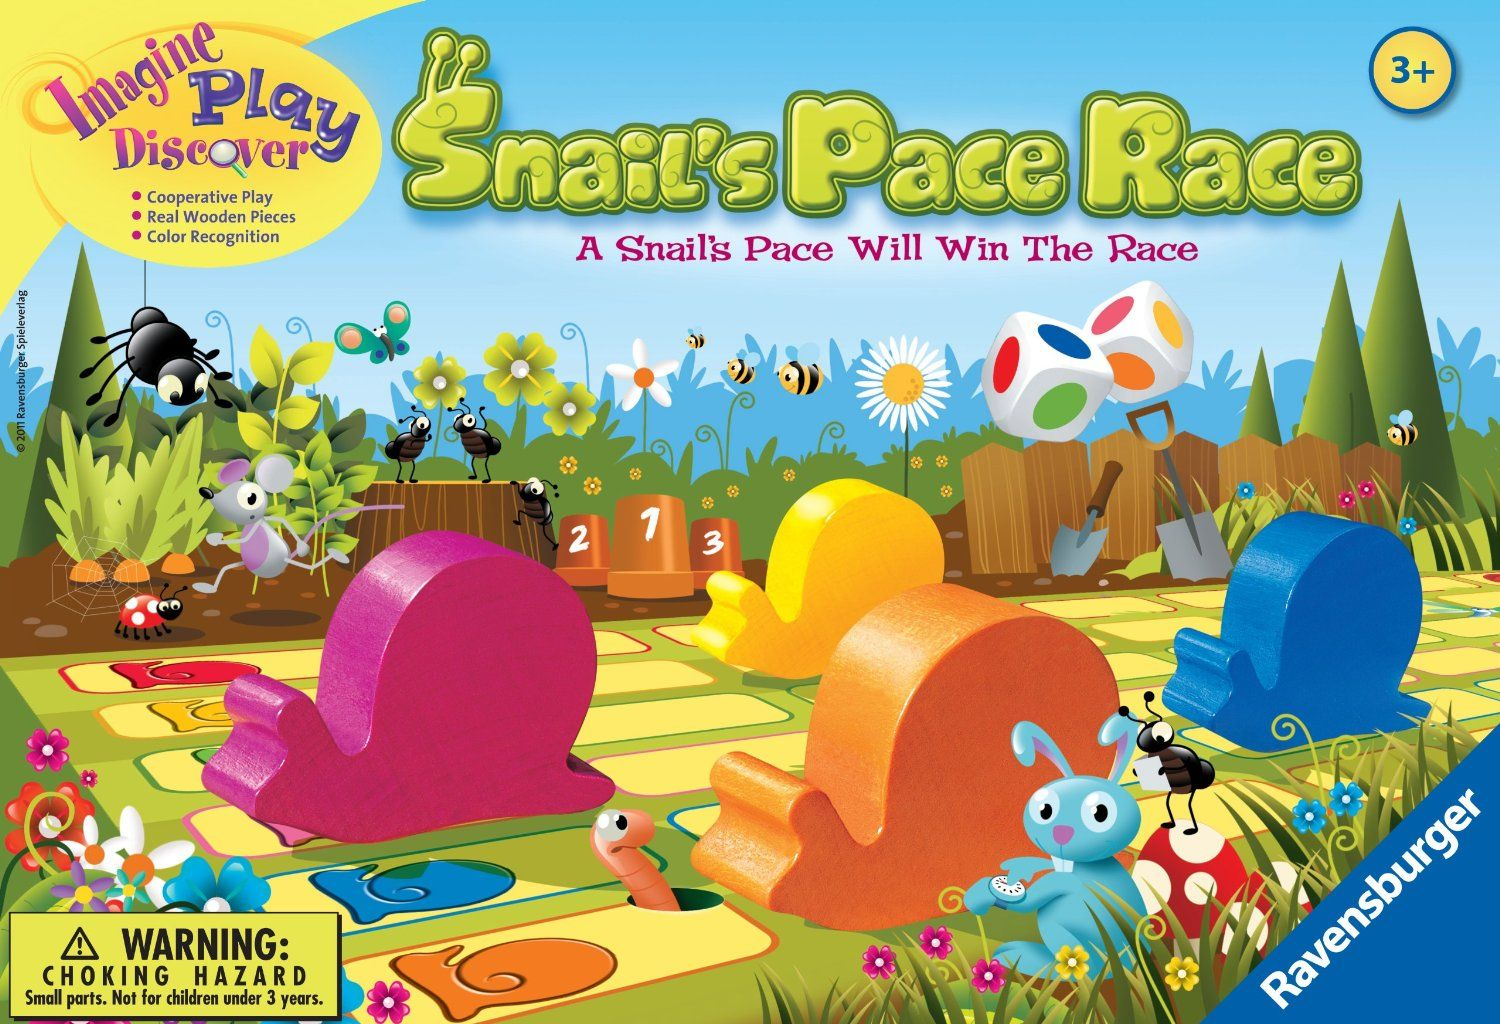 Snail's Pace Race Games for kids, Cooperative games